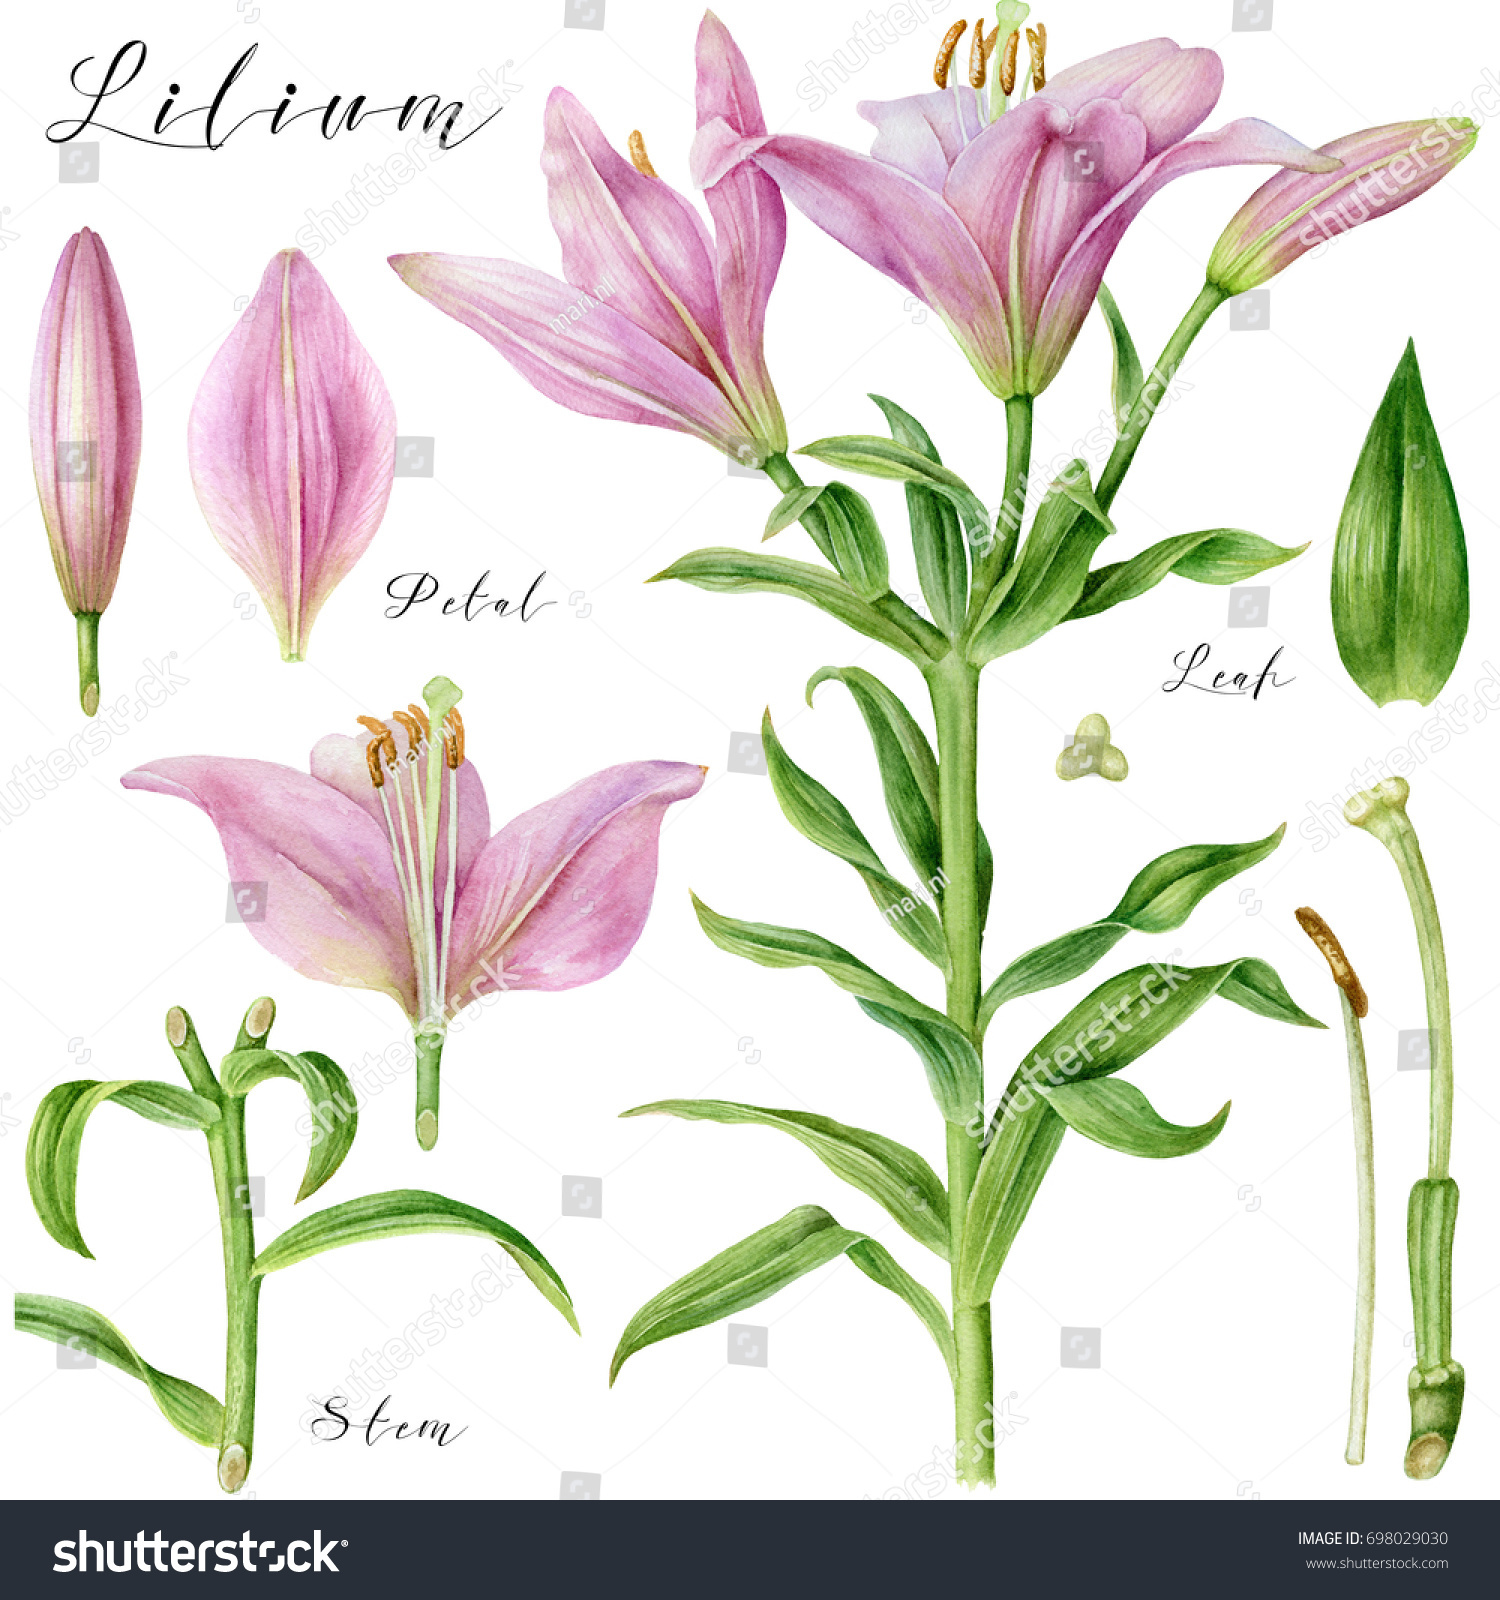 Botanical Art Watercolor Pink Pale Lily Stock Illustration 698029030